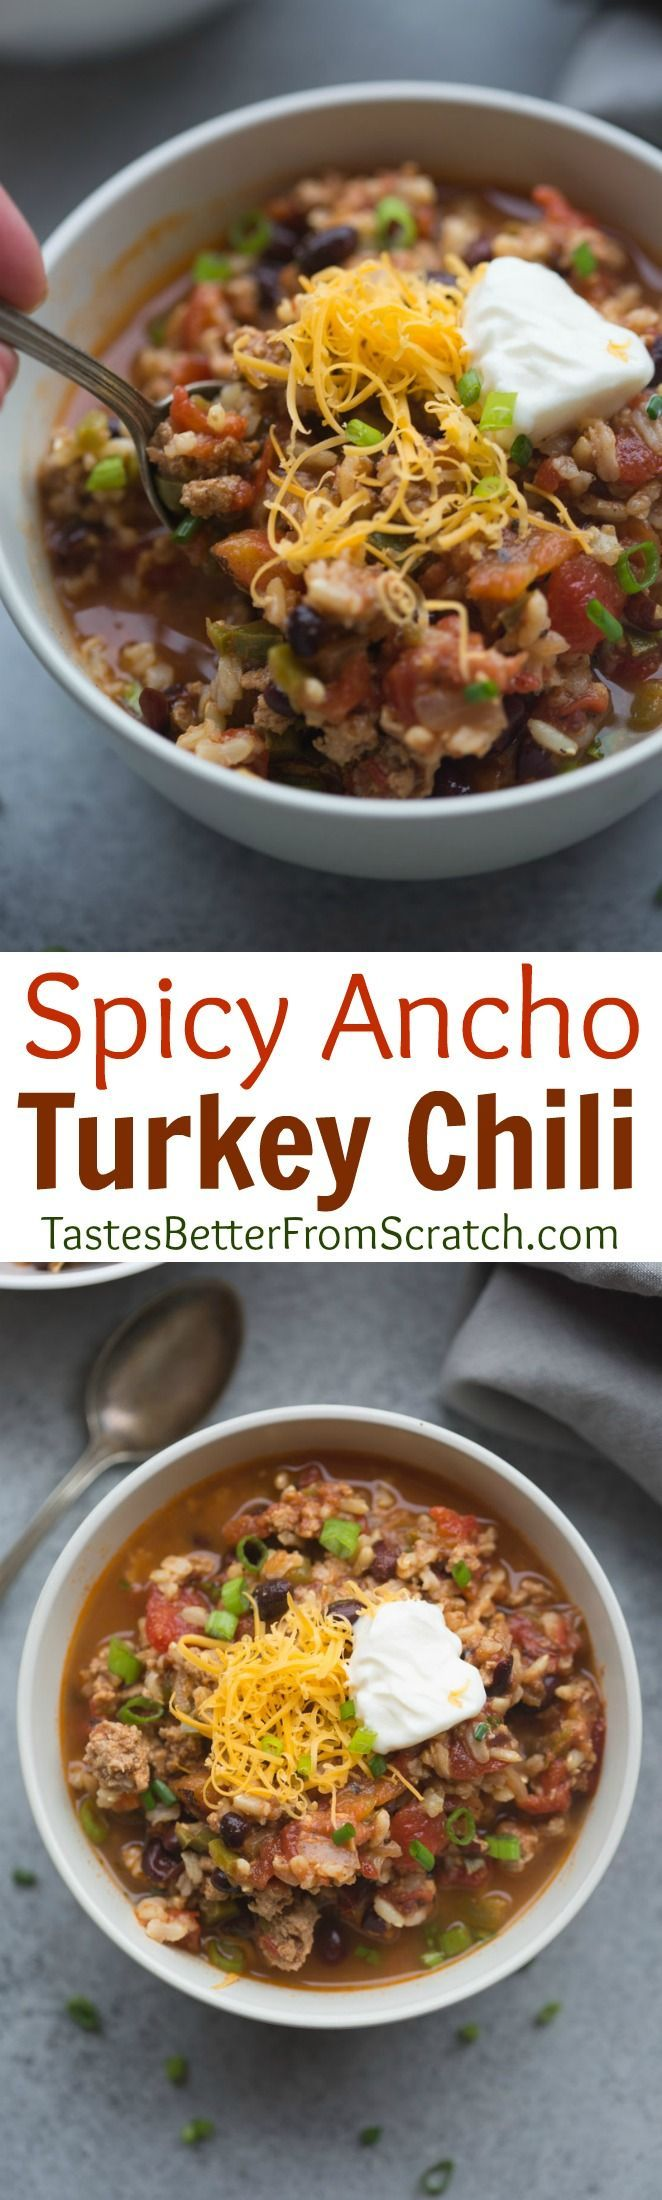 1000+ images about Spicy Recipes on Pinterest | Spicy, Chipotle and ...